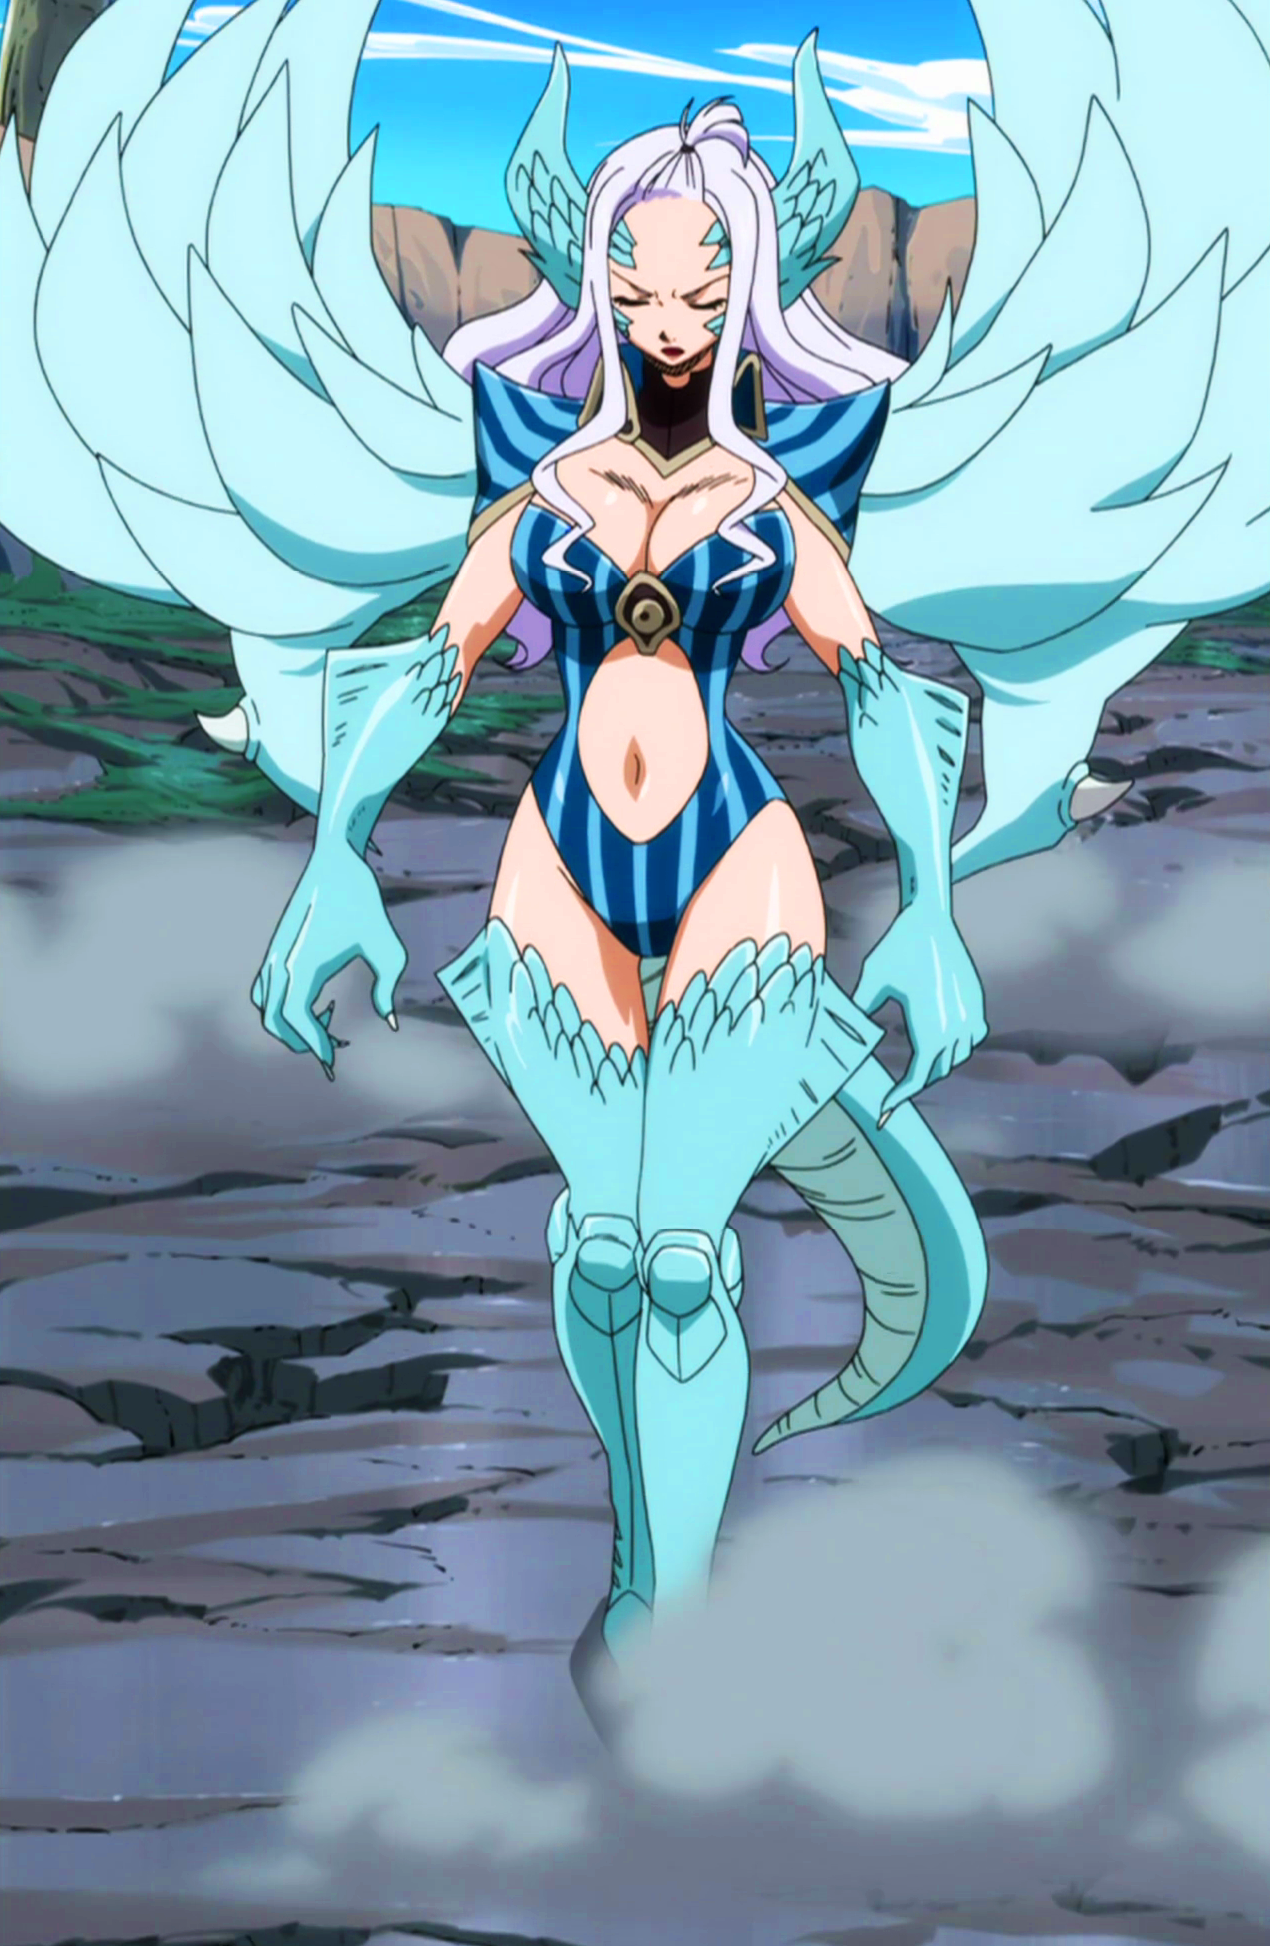 Satan Soul Halphas Fairy Tail Wiki Fandom ๛ magic is not meant to be used to kill people.but without powers we can't even protect the ones we love. satan soul halphas fairy tail wiki